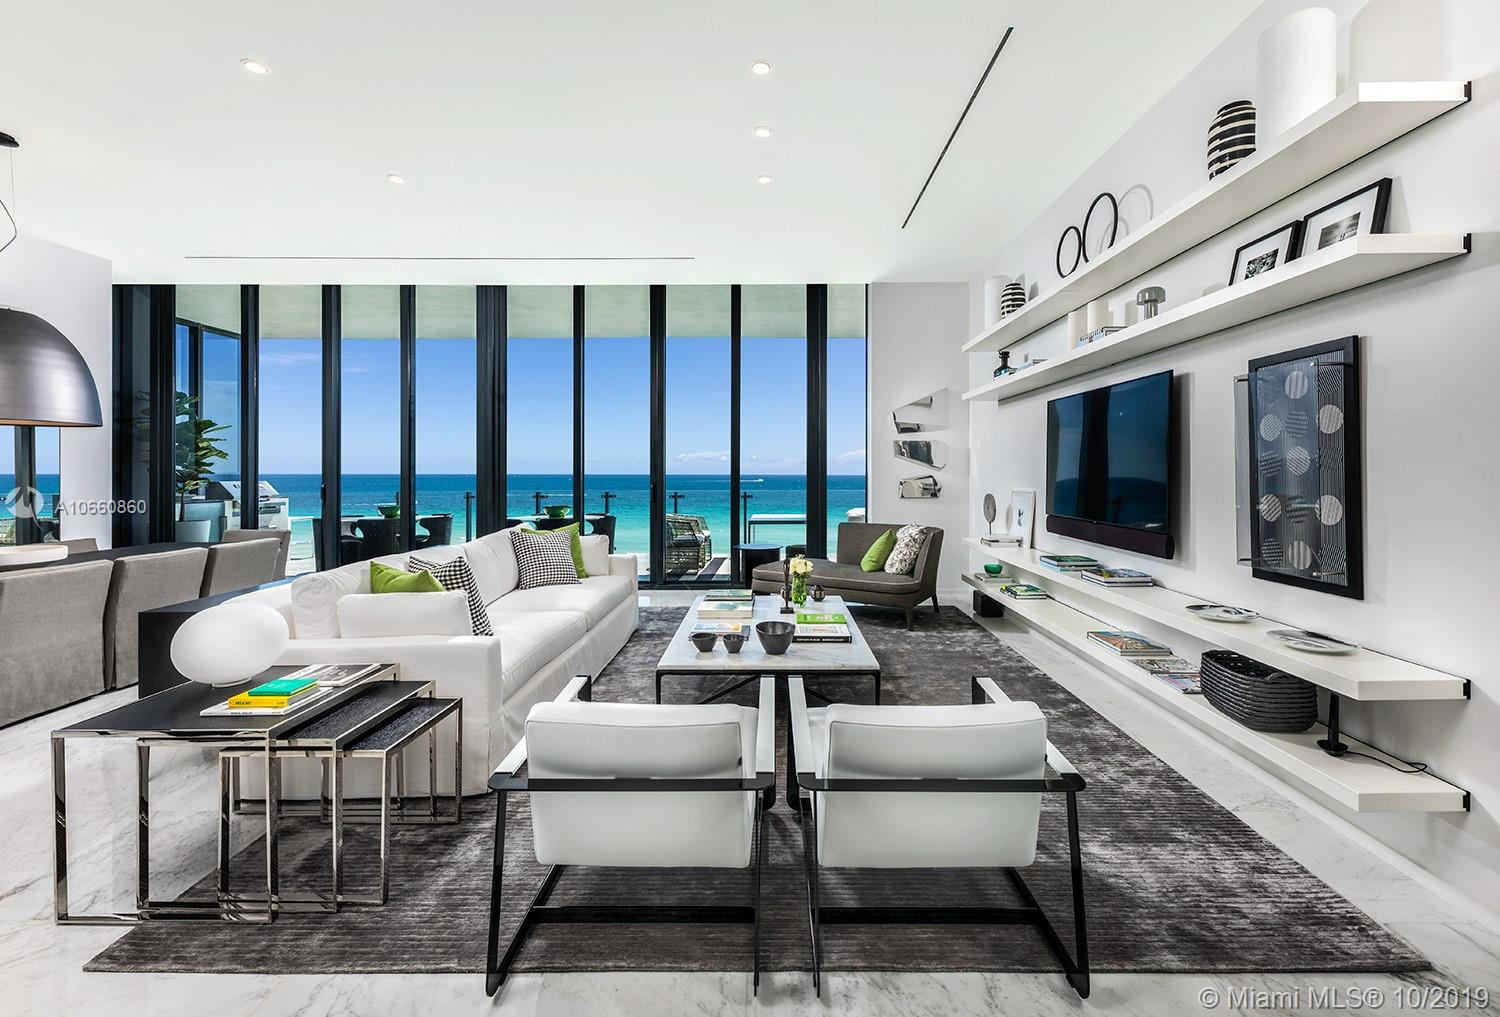 17141 Collins Ave, Sunny Isles Beach, Florida